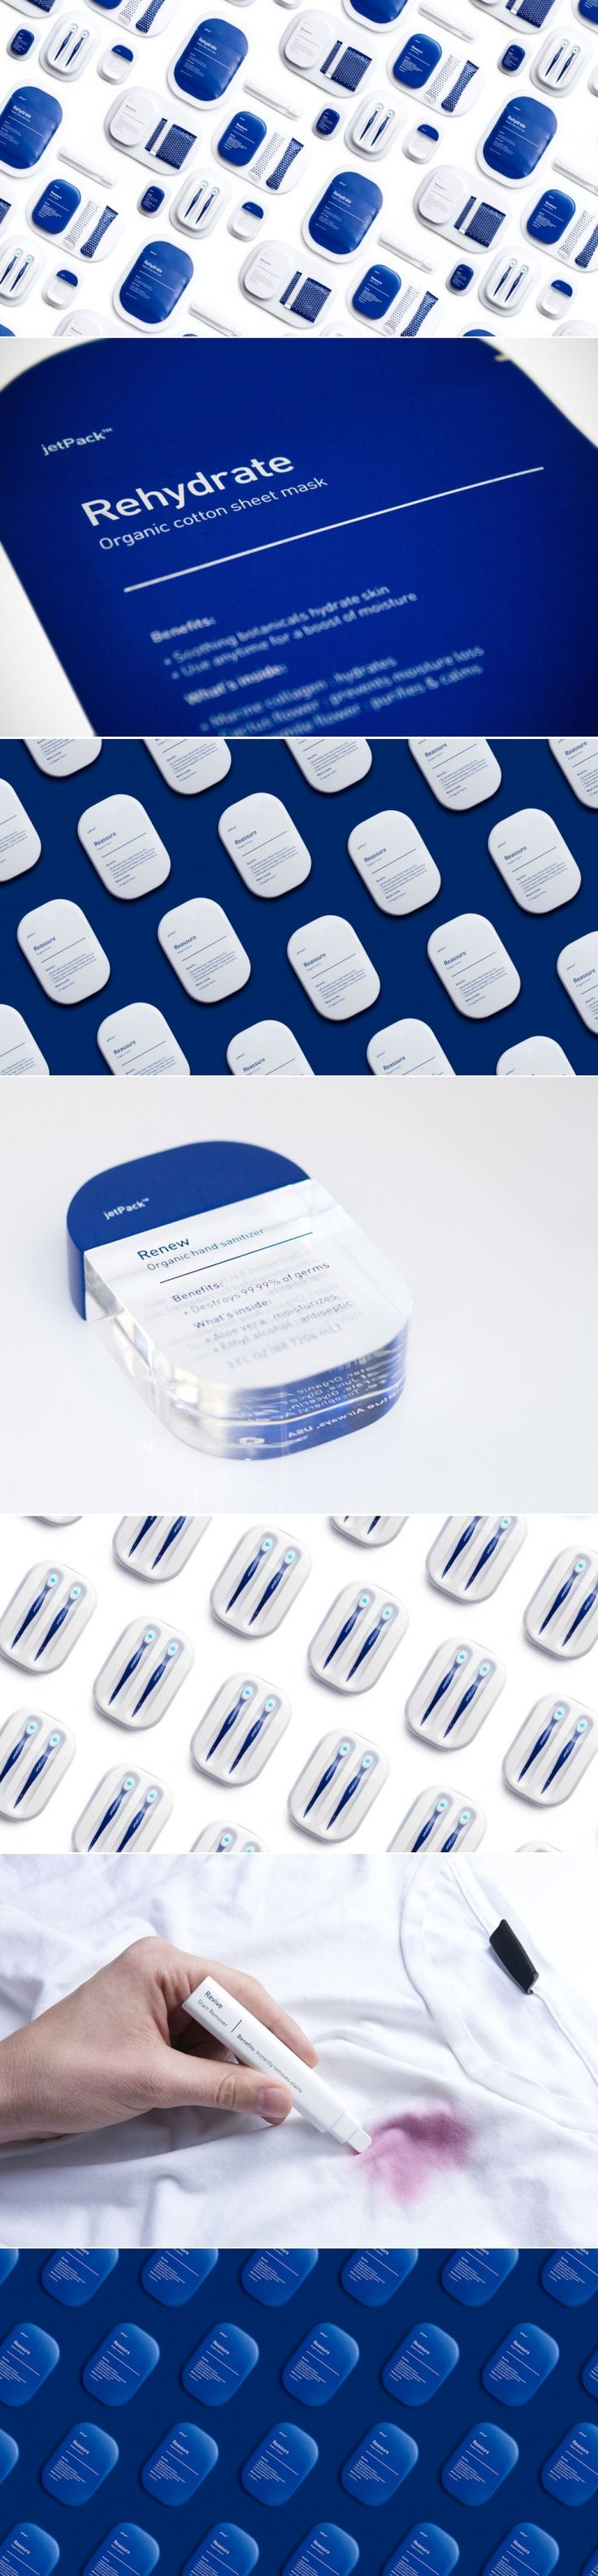 What If You Were Given Hand Sanitizer Every Time You Flew With JetBlue? — The Dieline | Packaging & Branding Design & Innovation News